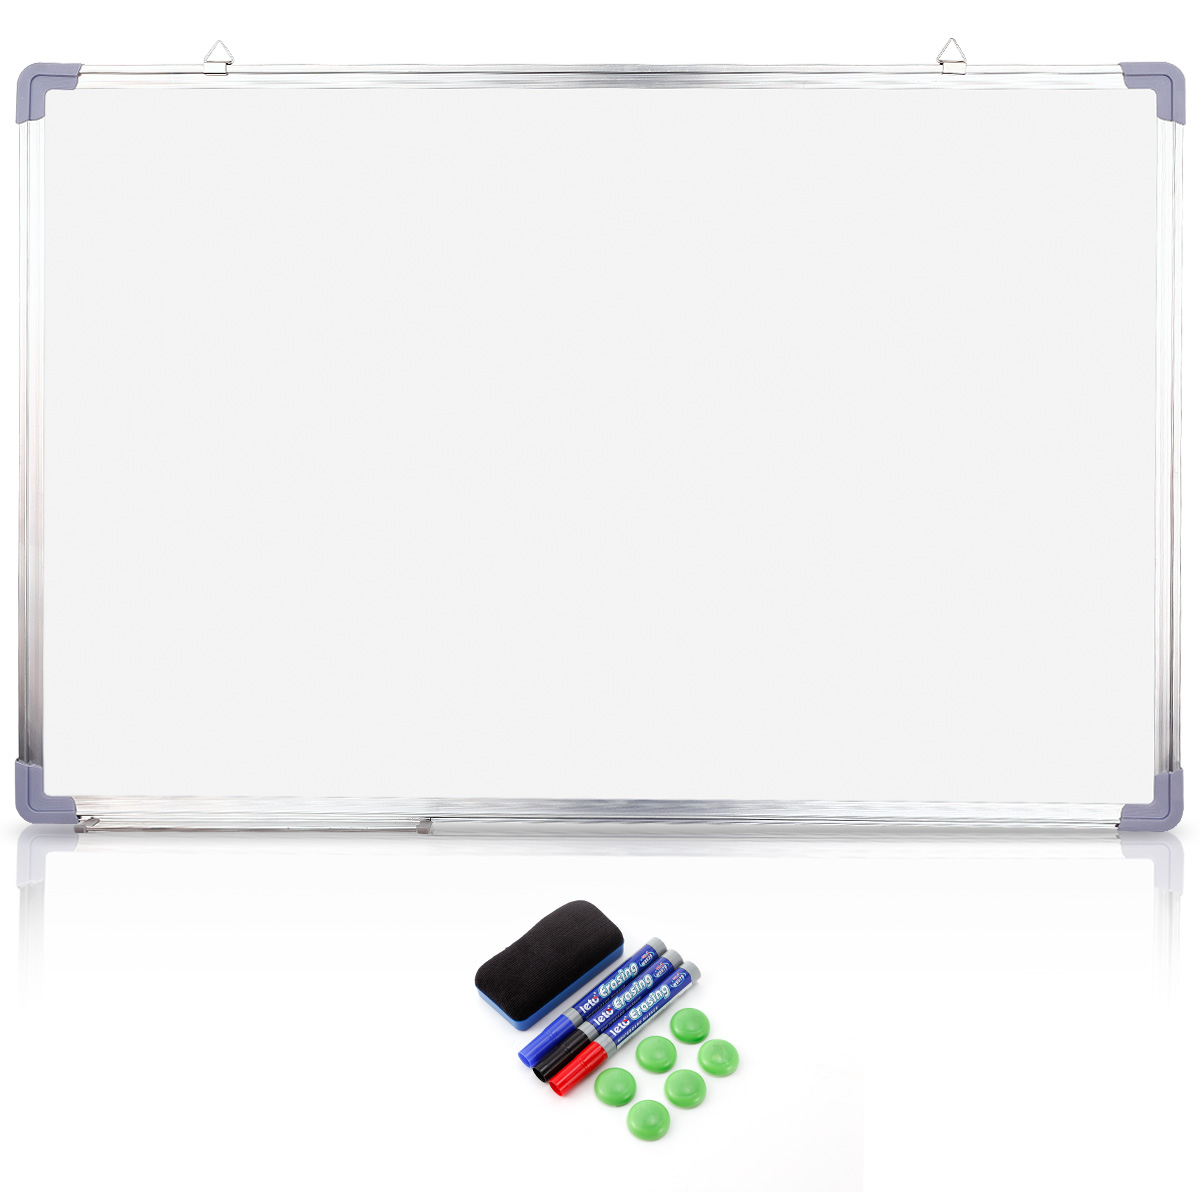 magnetic writing board A magnetic stylus pulls beads up to create solid lines kids writing their first letters will get helpful up, down and sideways instructions via easy-to-follow arrows erases with the tip of a finger .